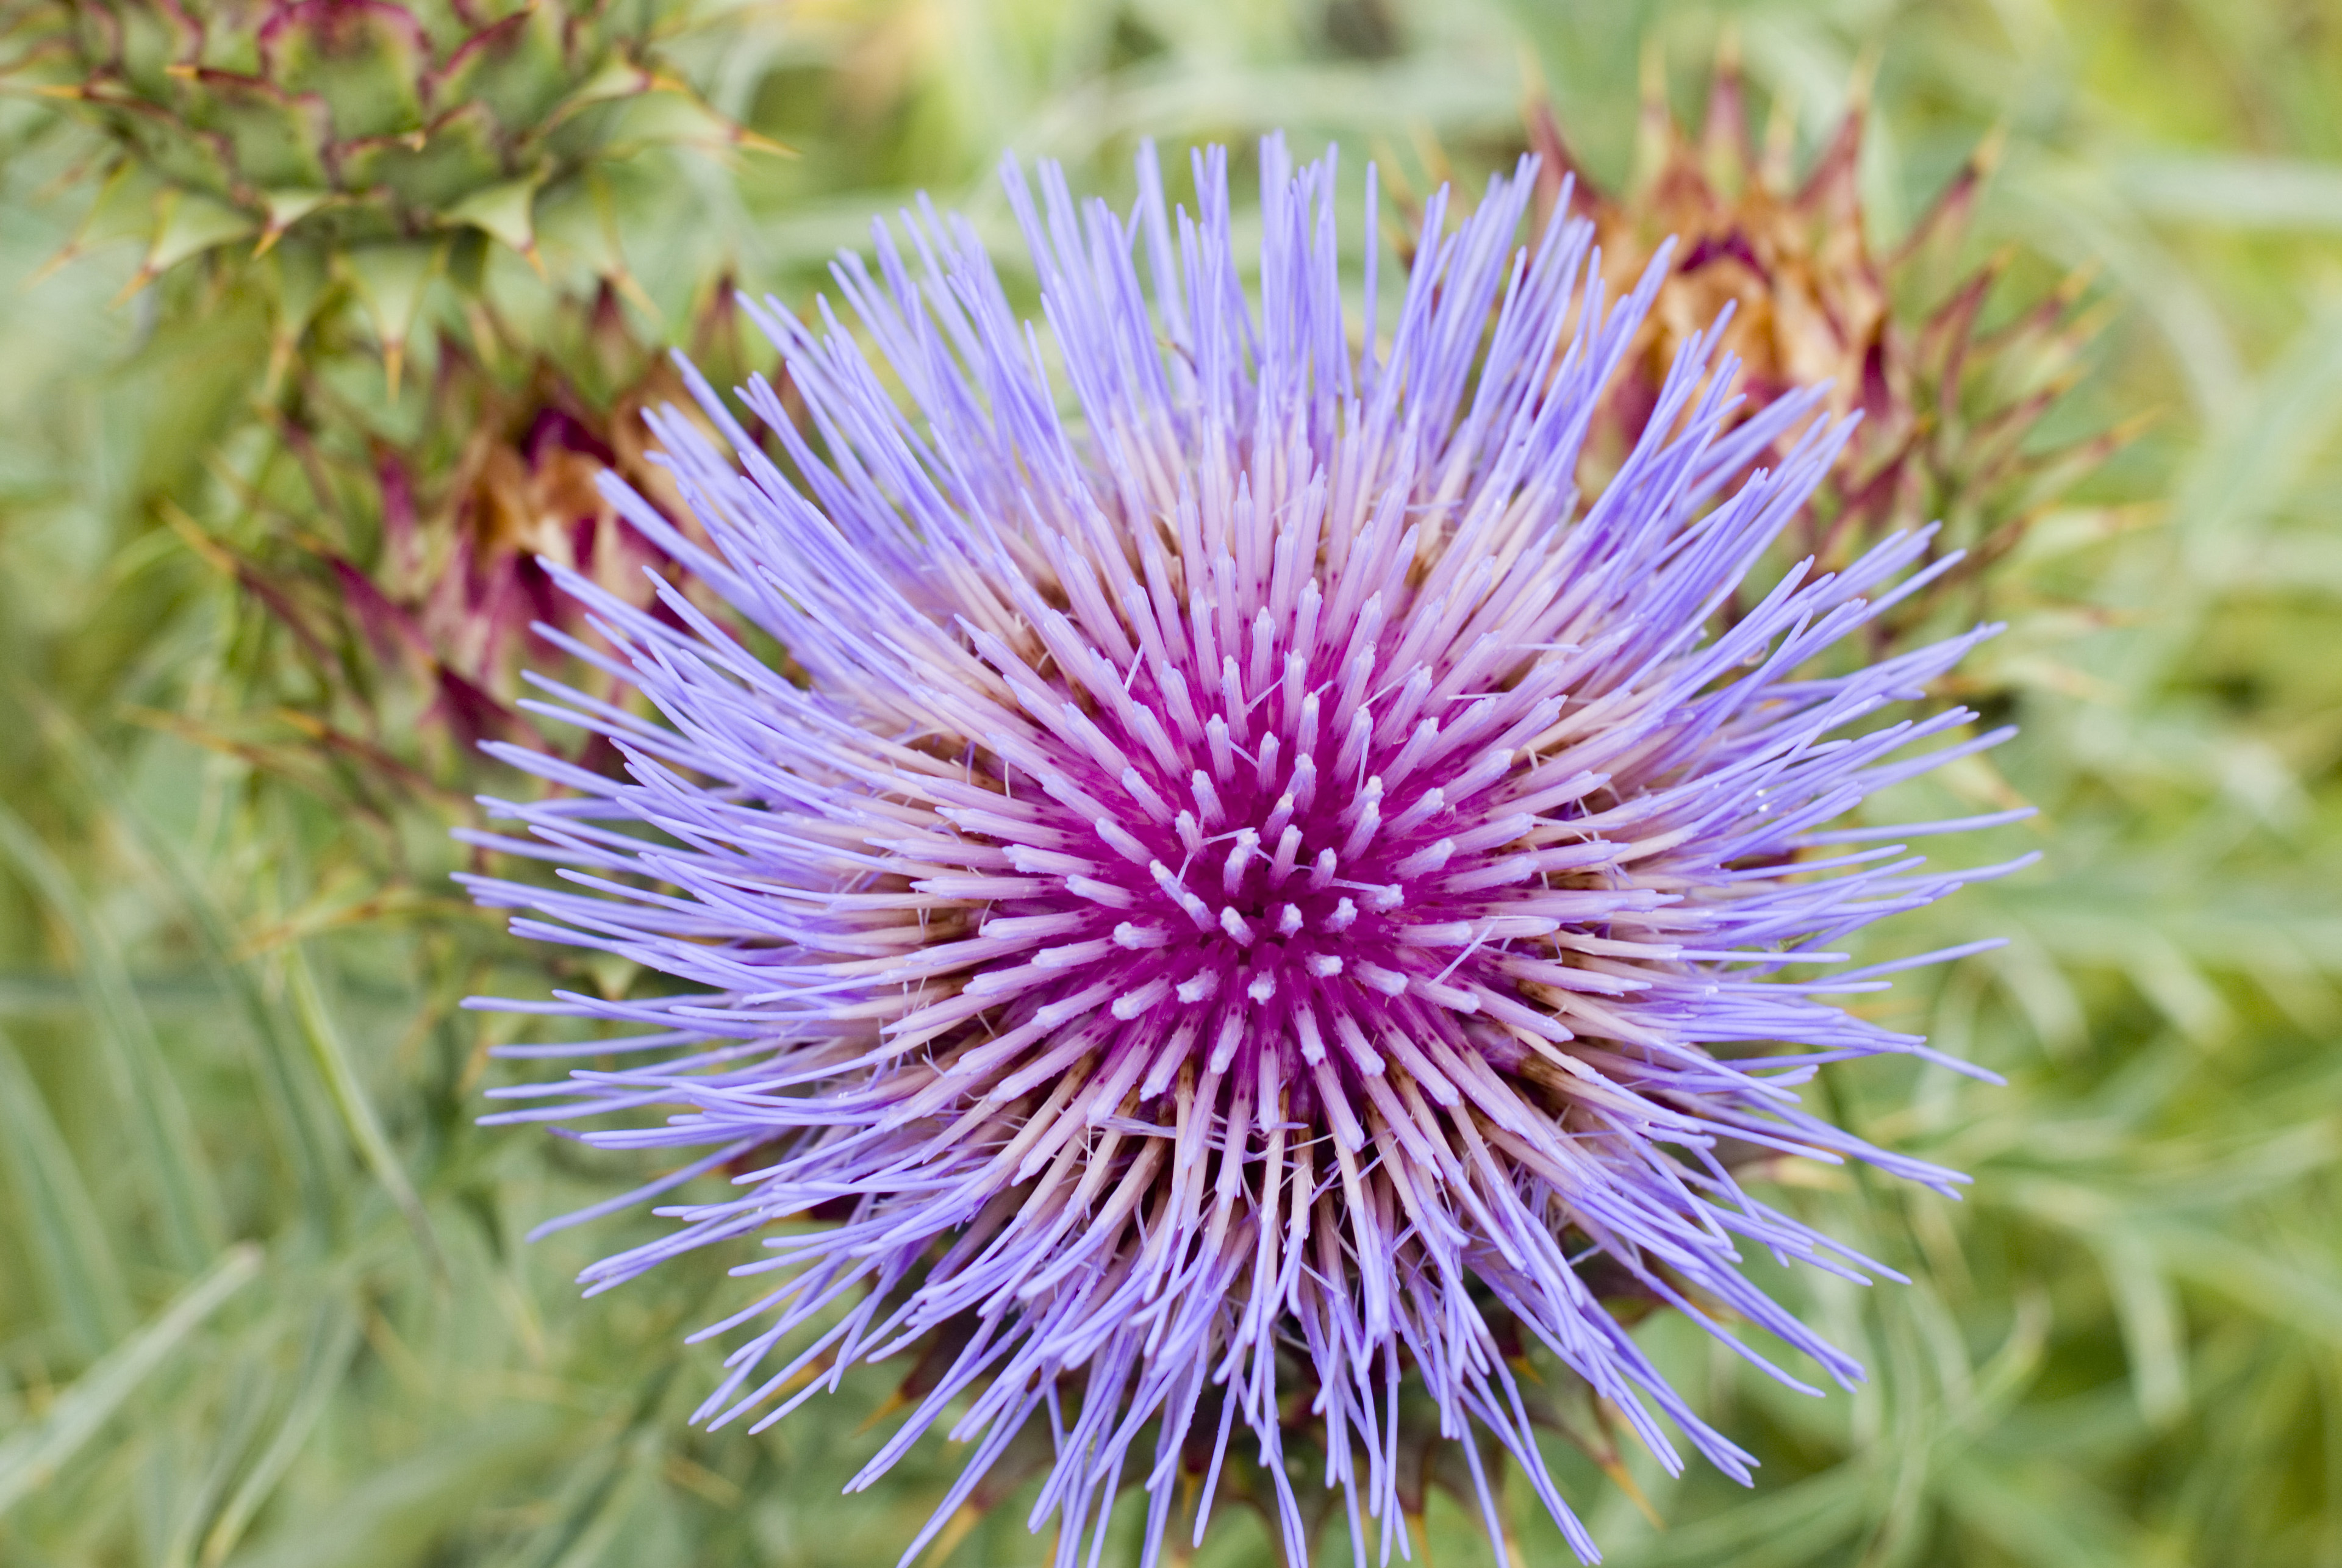 Lilac round milk thistle flower head grown surrounded by green vegetation in summer, close-up